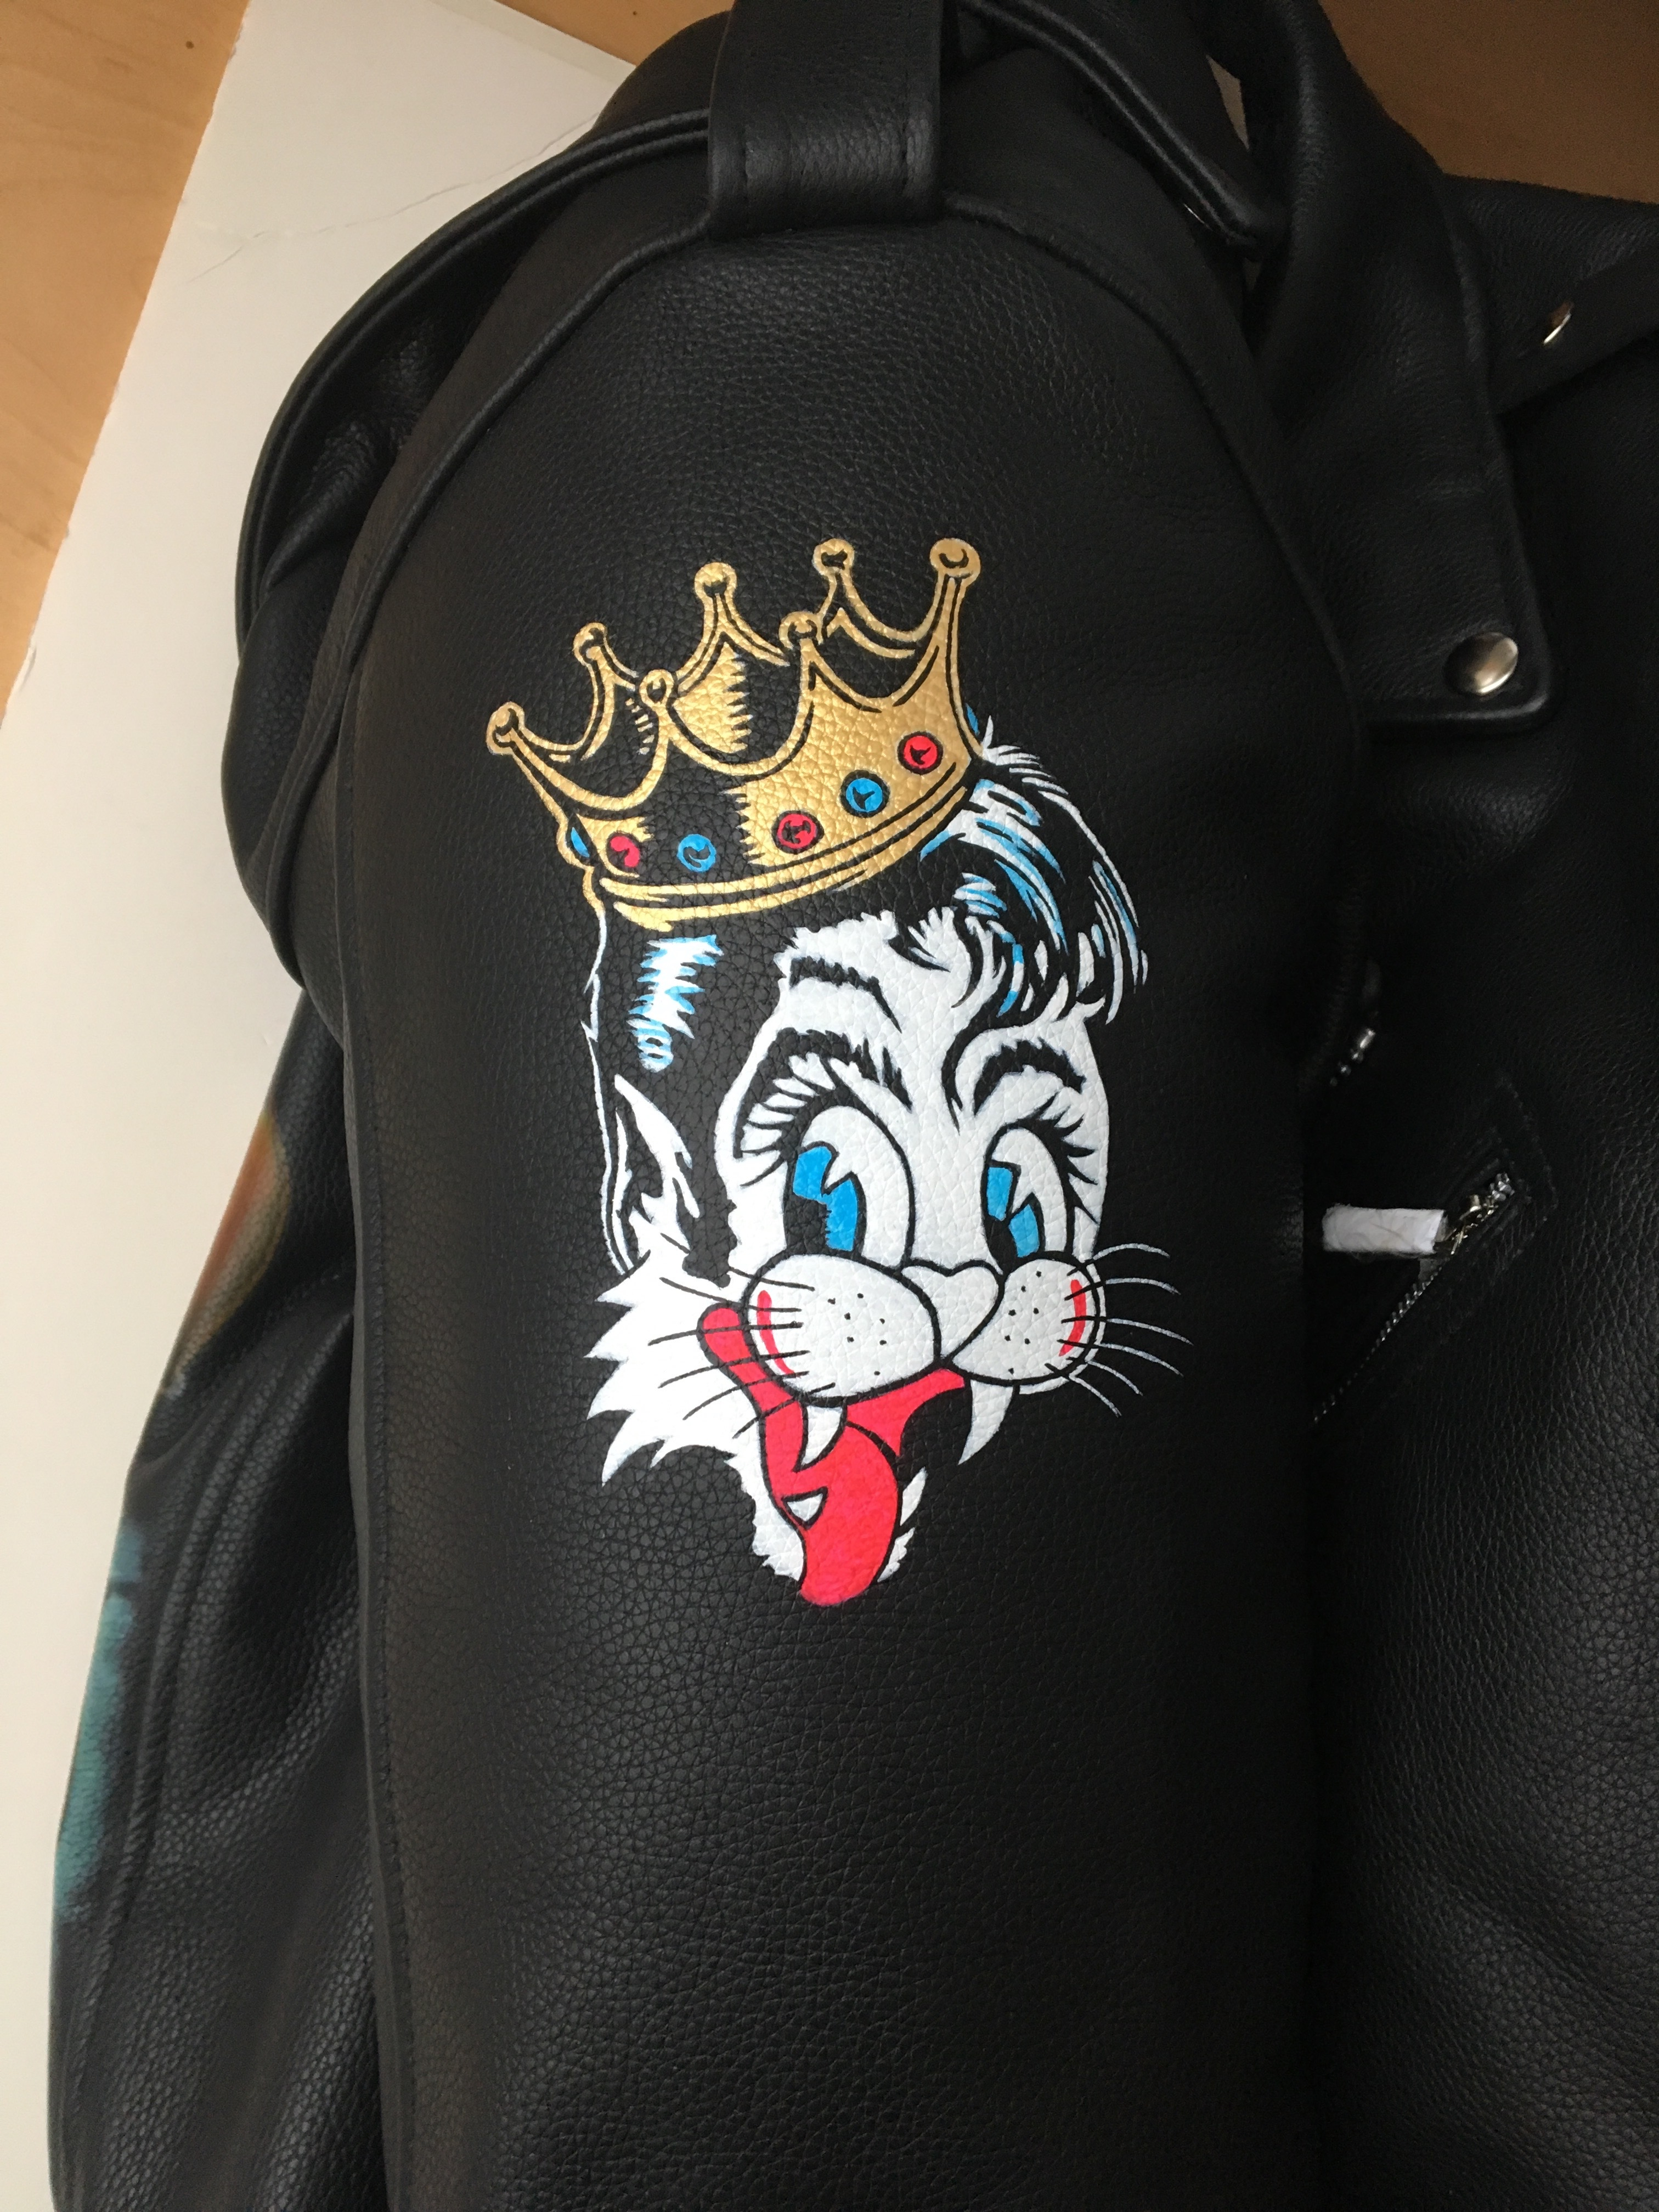 38a222a1950 Further image on sleeve of Stray Cats jacket.